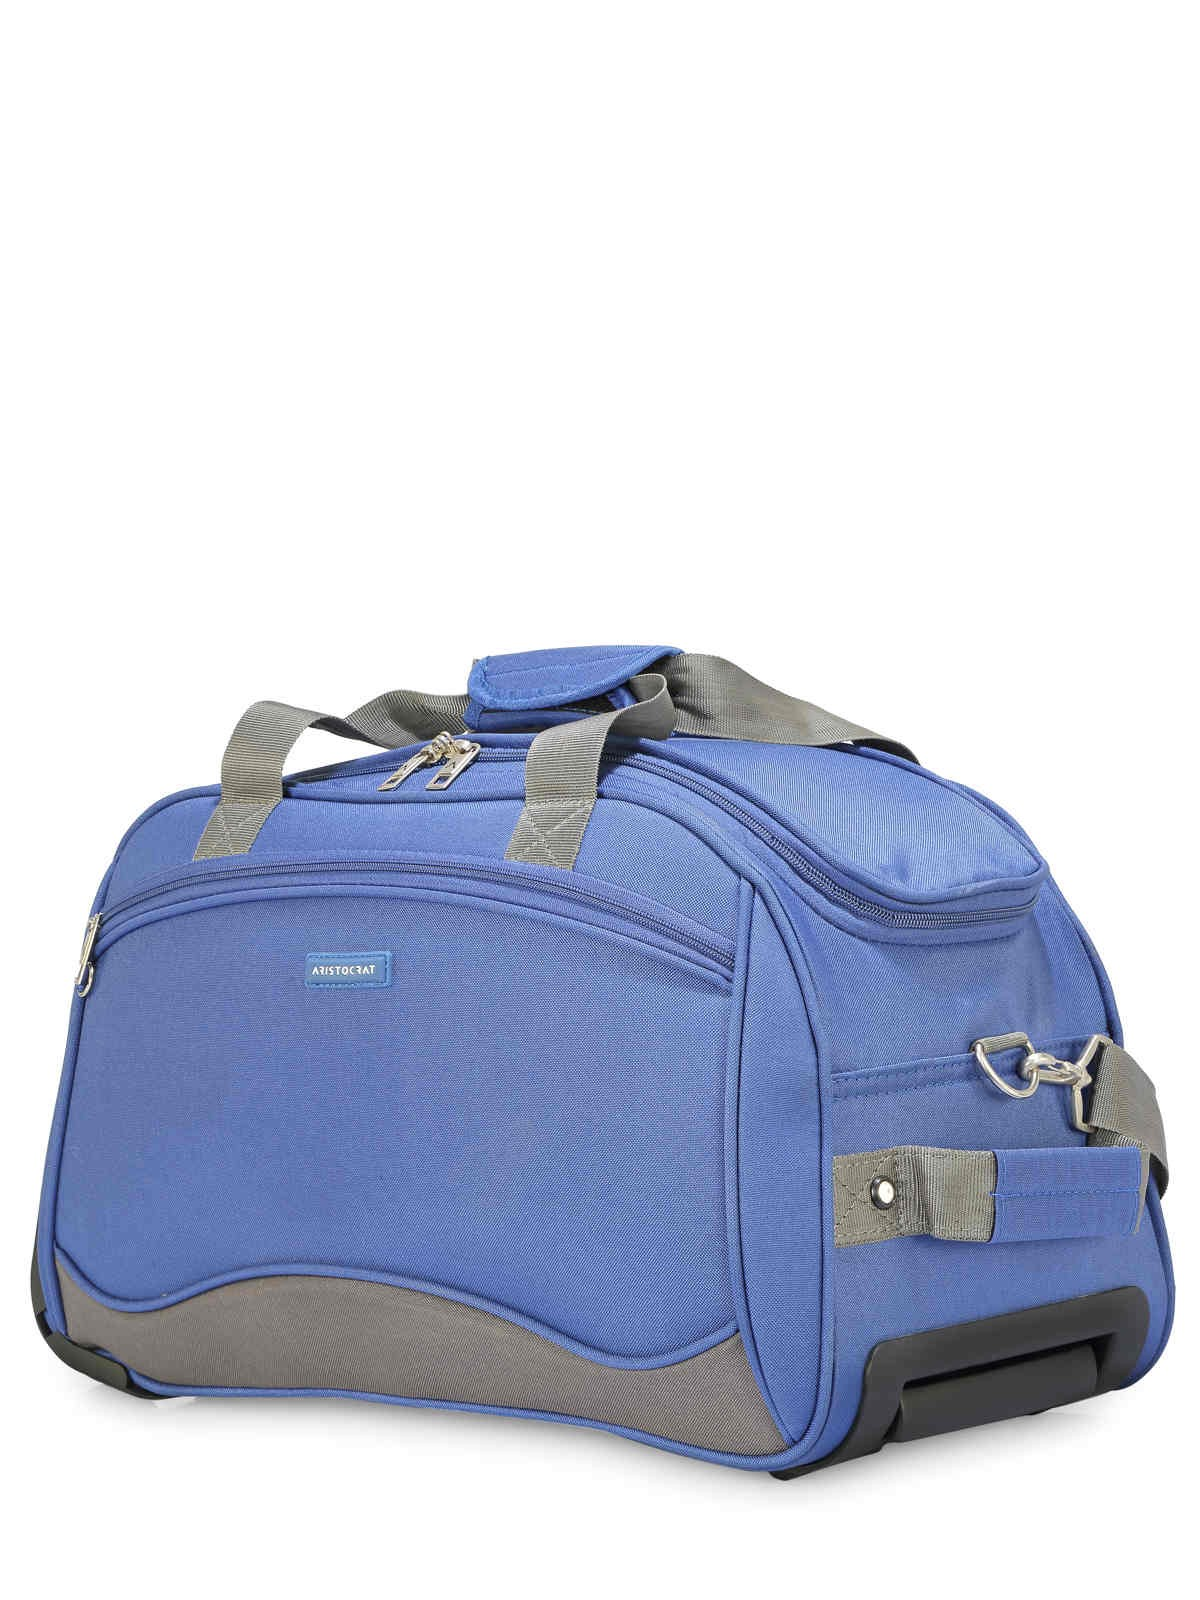 VOLT DUFFLE TROLLEY 55BLUE FROM ARISTOCRAT